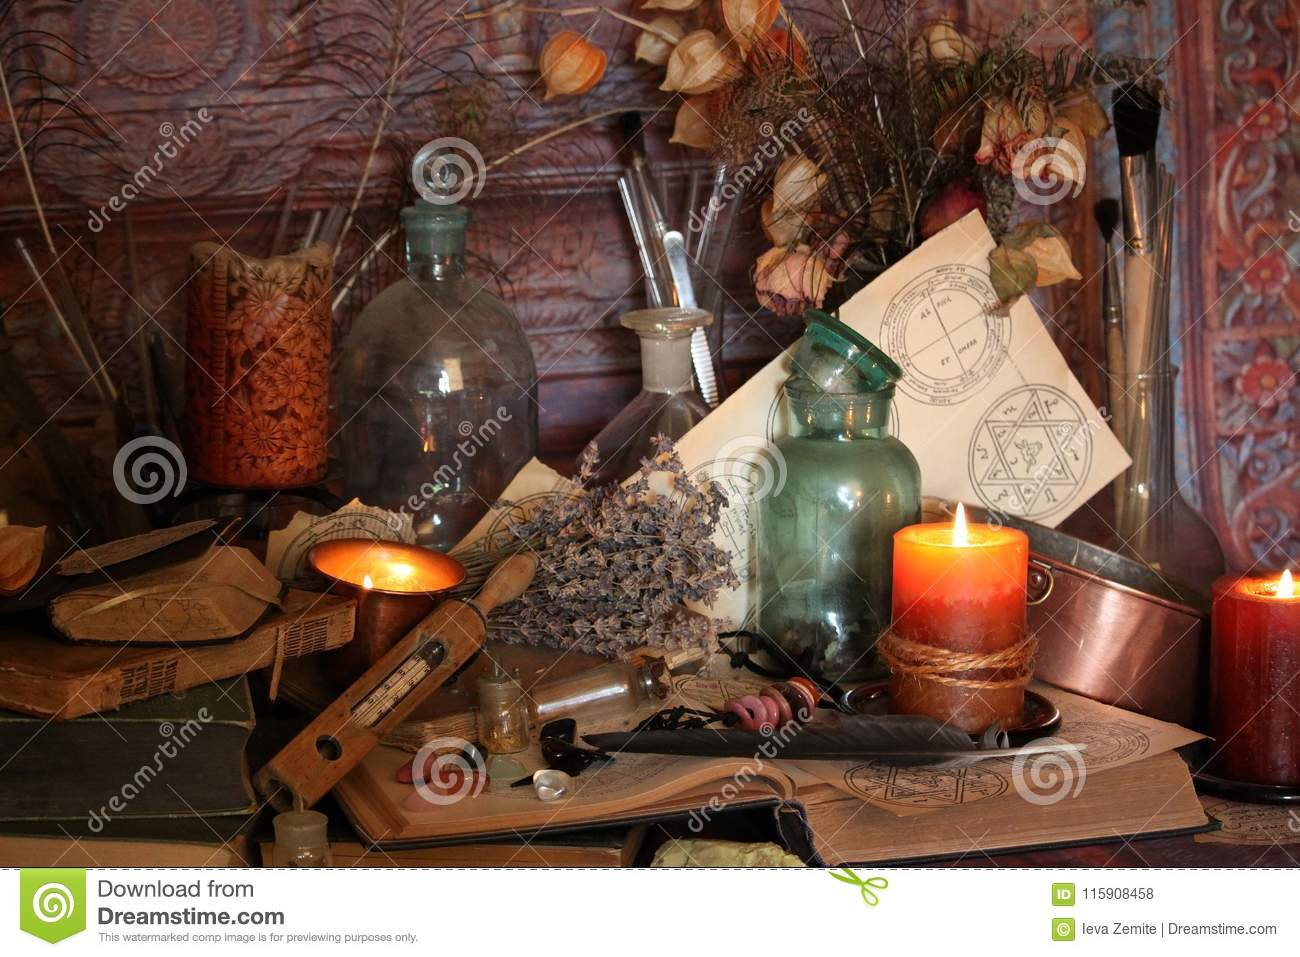 Black Magic Spells  Wiccan Spells  Stock Photo   Image of magic     Download Black Magic Spells  Wiccan Spells  Stock Photo   Image of magic   amulet